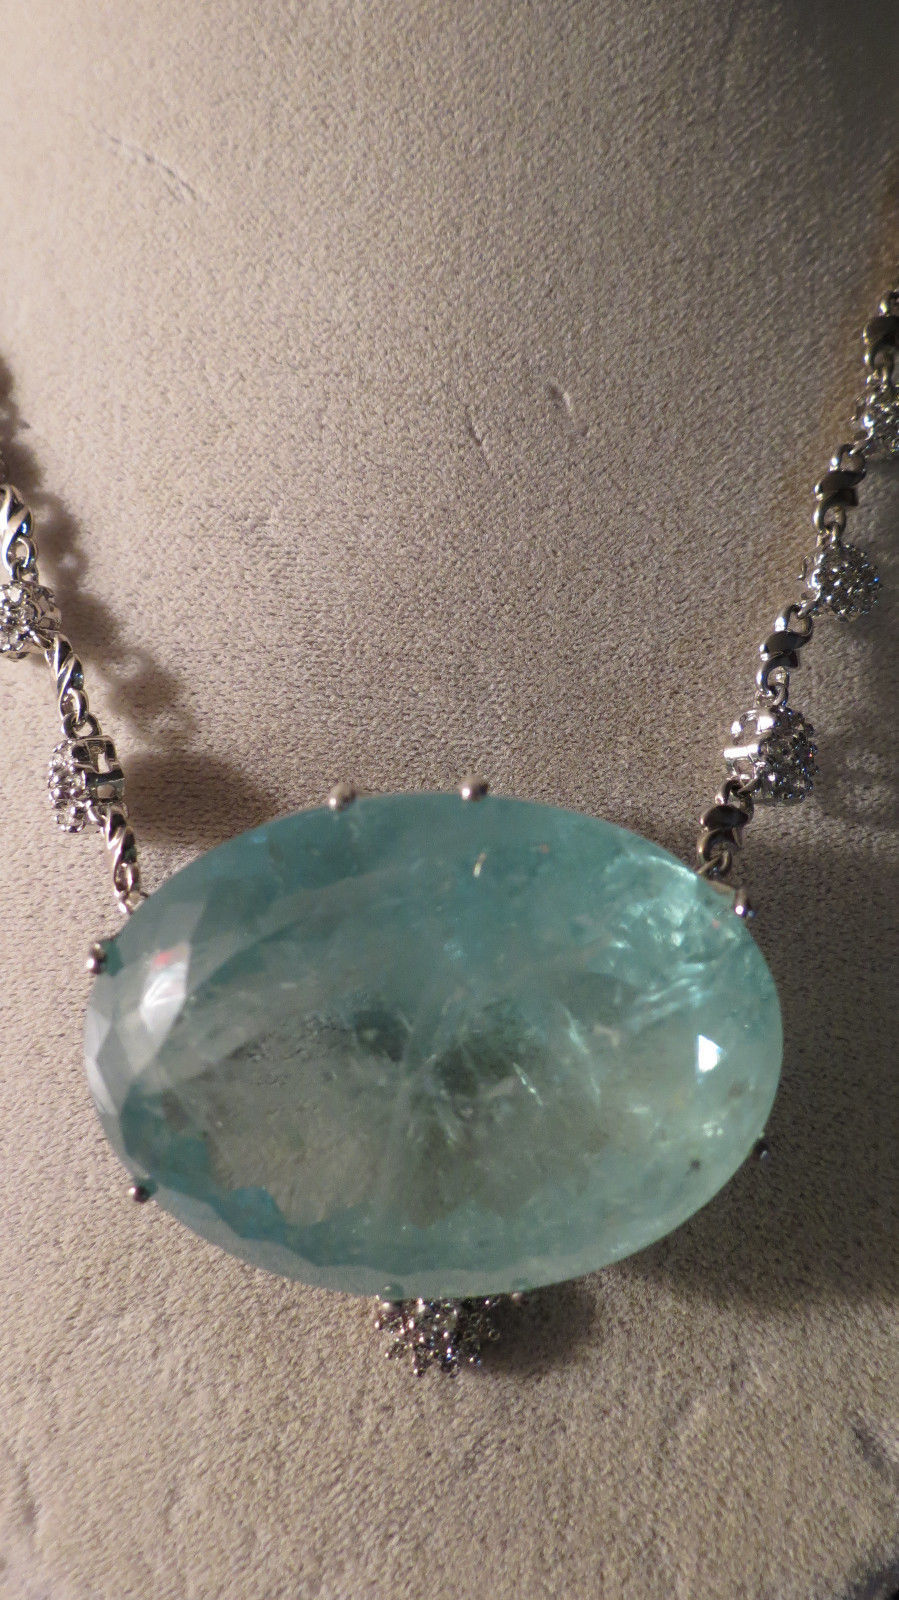 Gigantic Huge 188 ct aquamarine 1.7 ct diamond & 14k white gold necklace choker